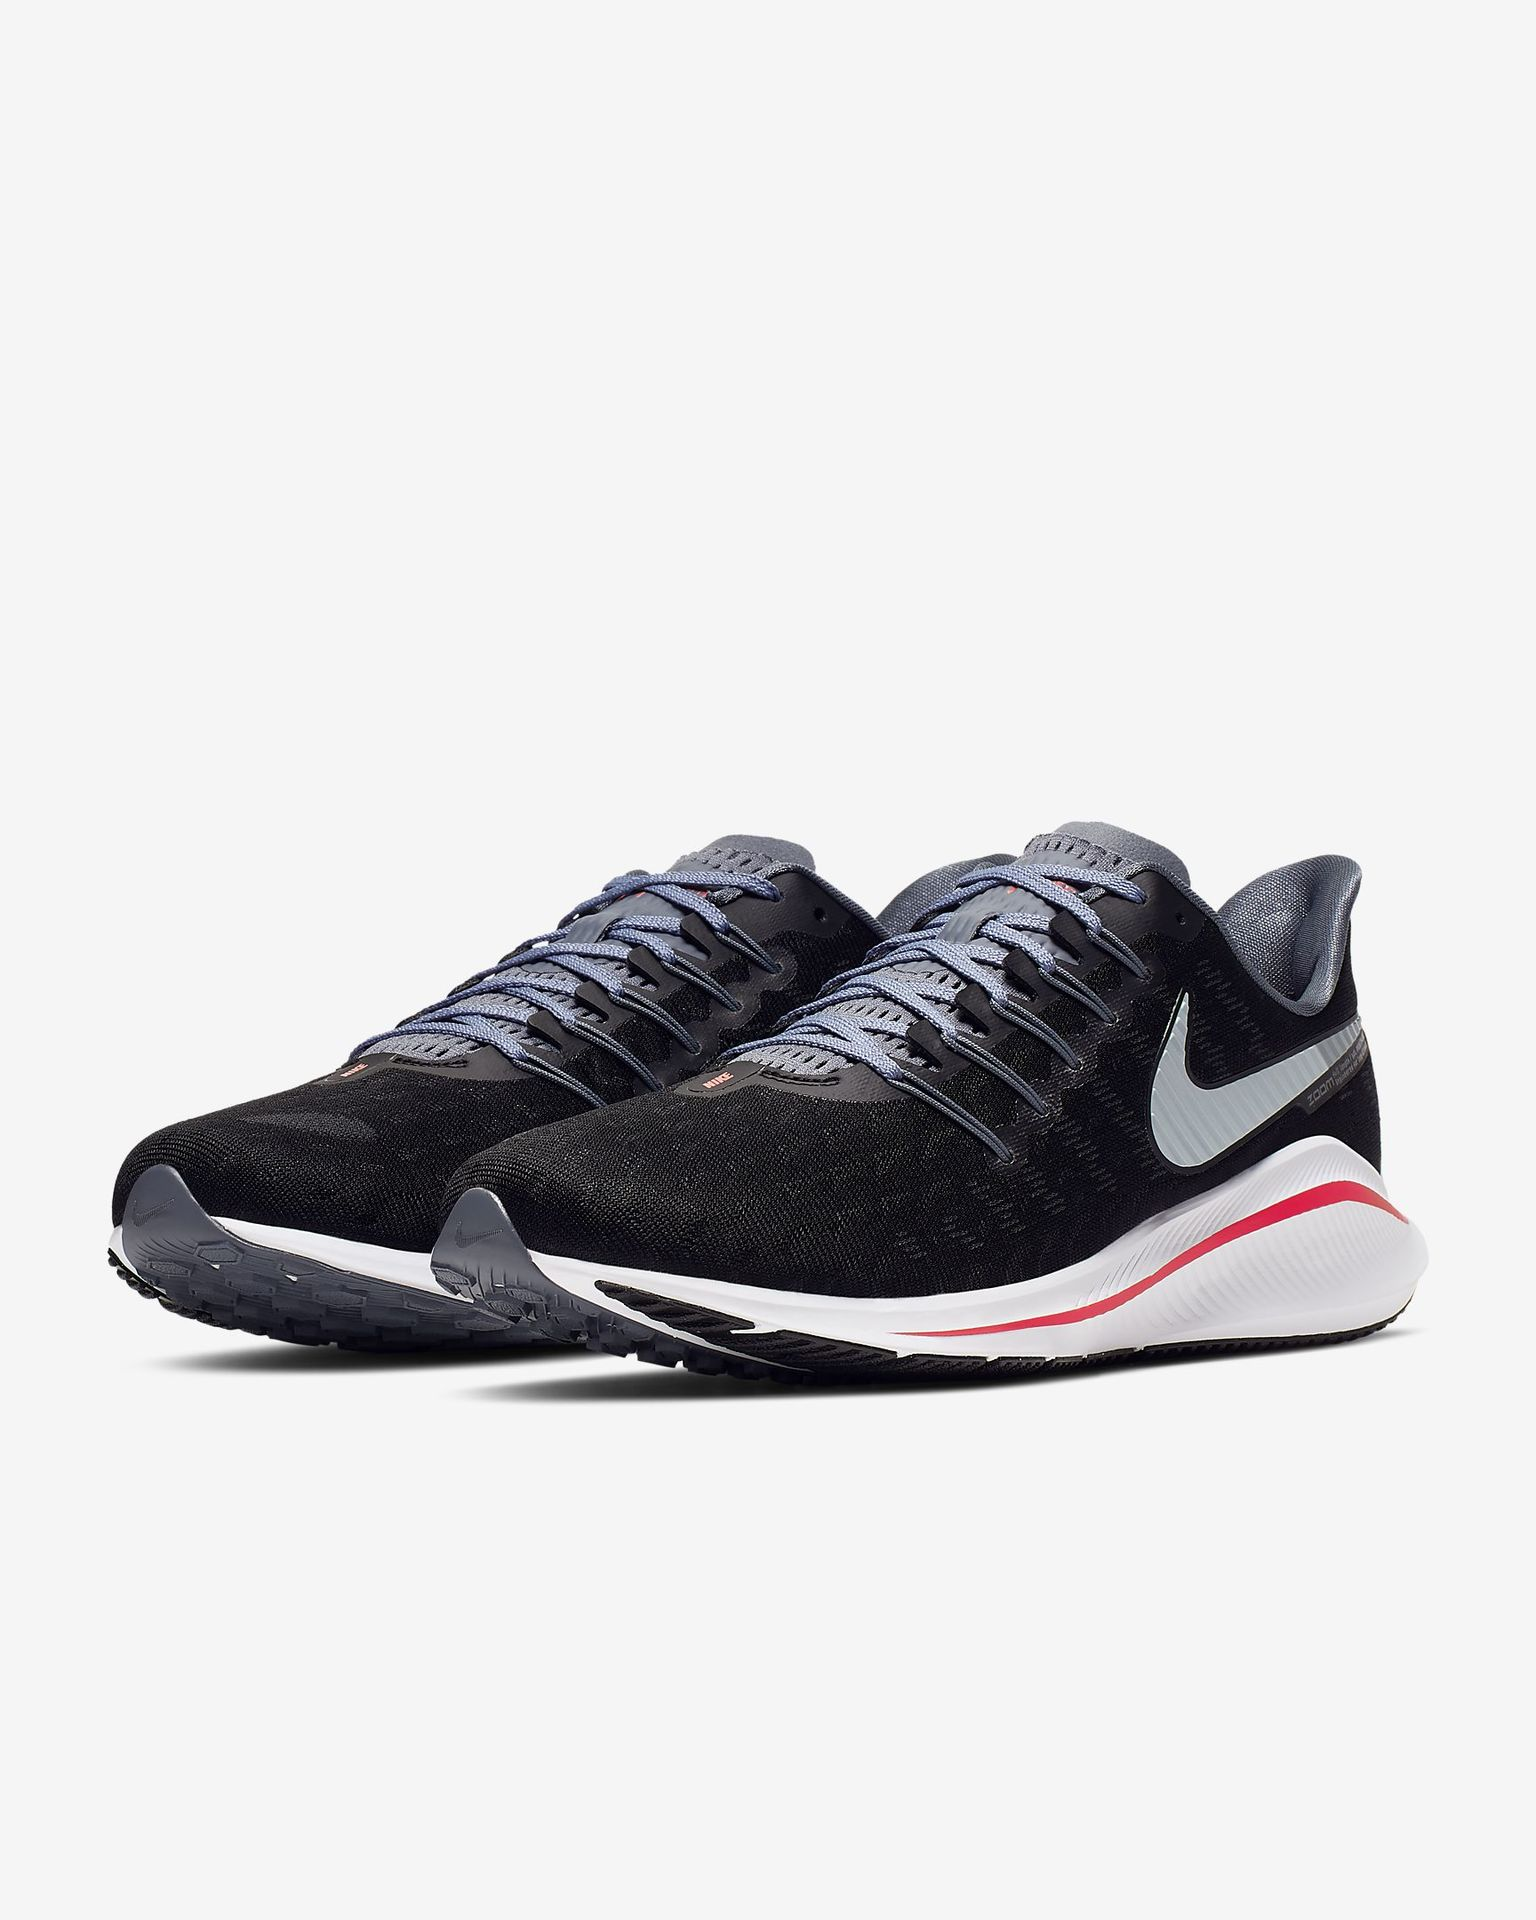 wide selection of colours and designs online sale top design What Shoes Are Best for Wide Feet? | Nike Help